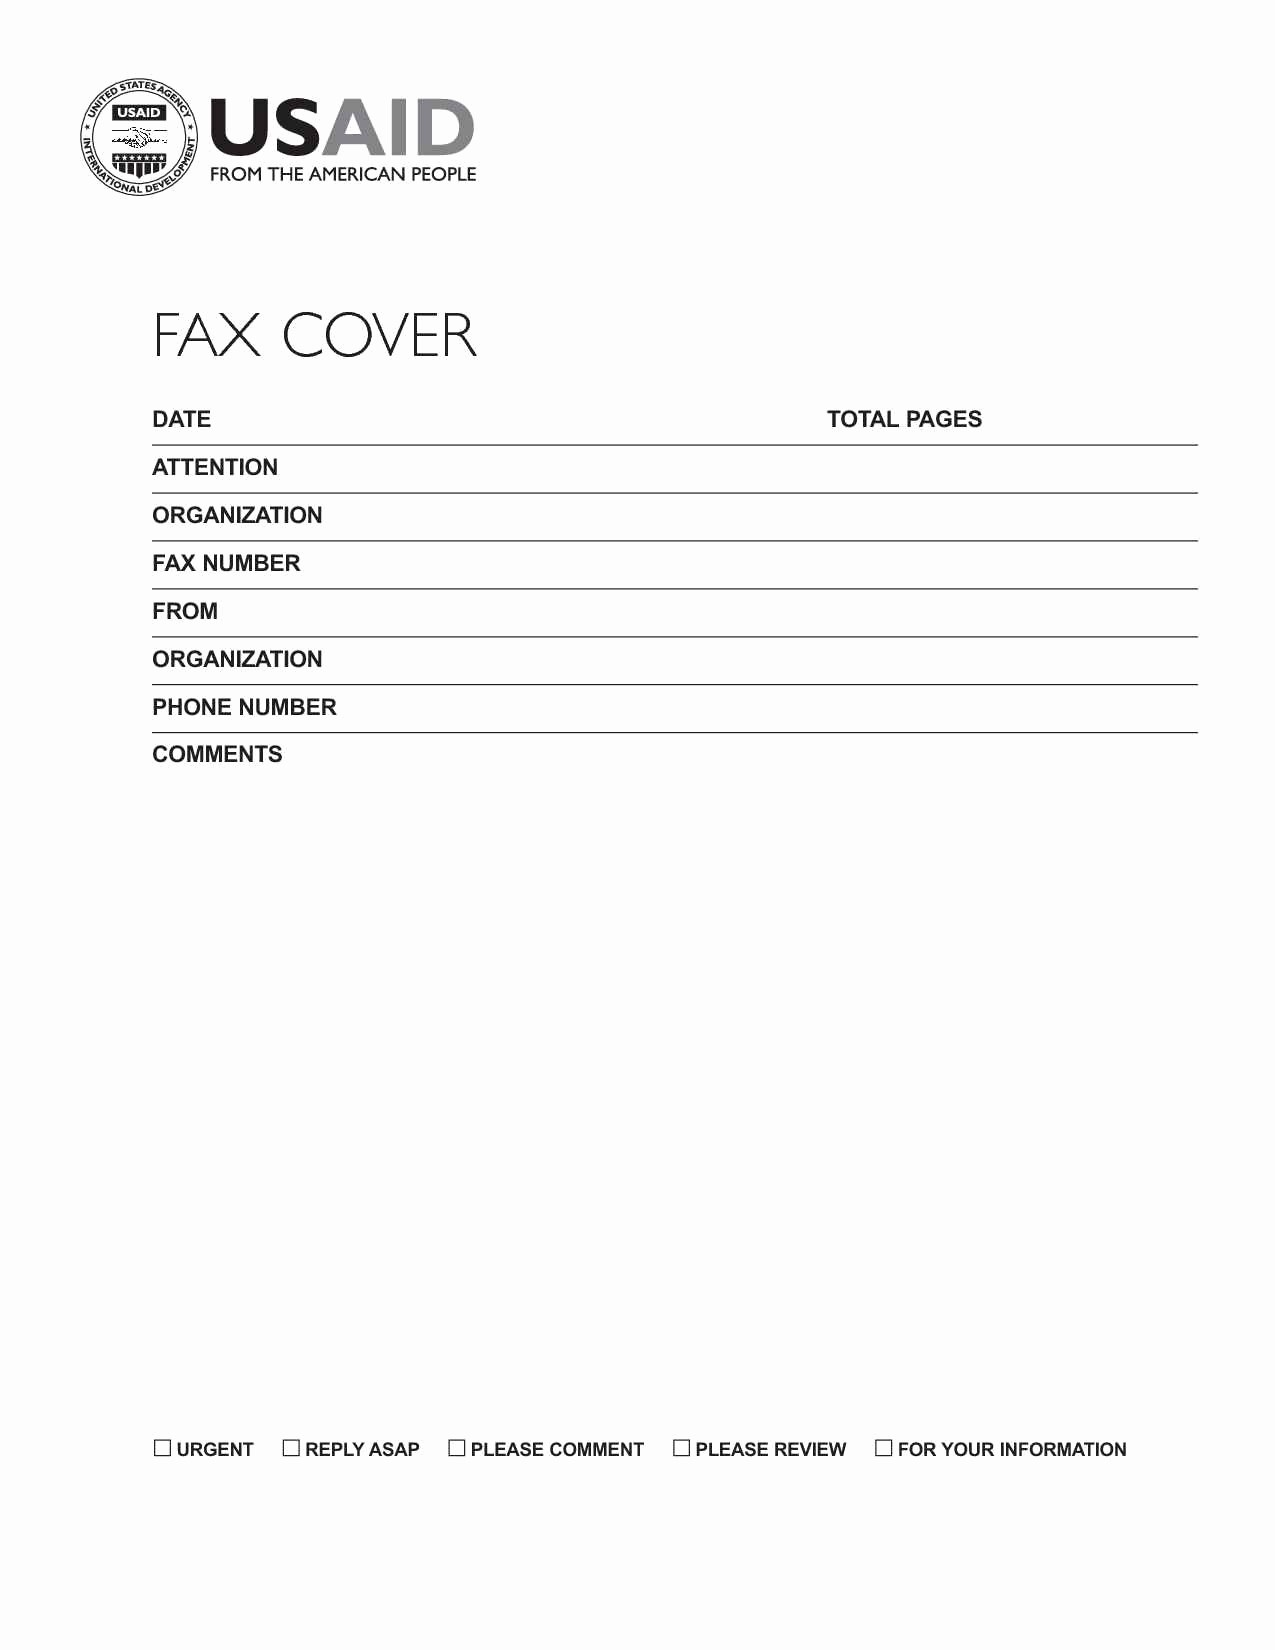 Personal Fax Cover Sheet Pdf Lovely Luxury Fax Cover Sheet Printable